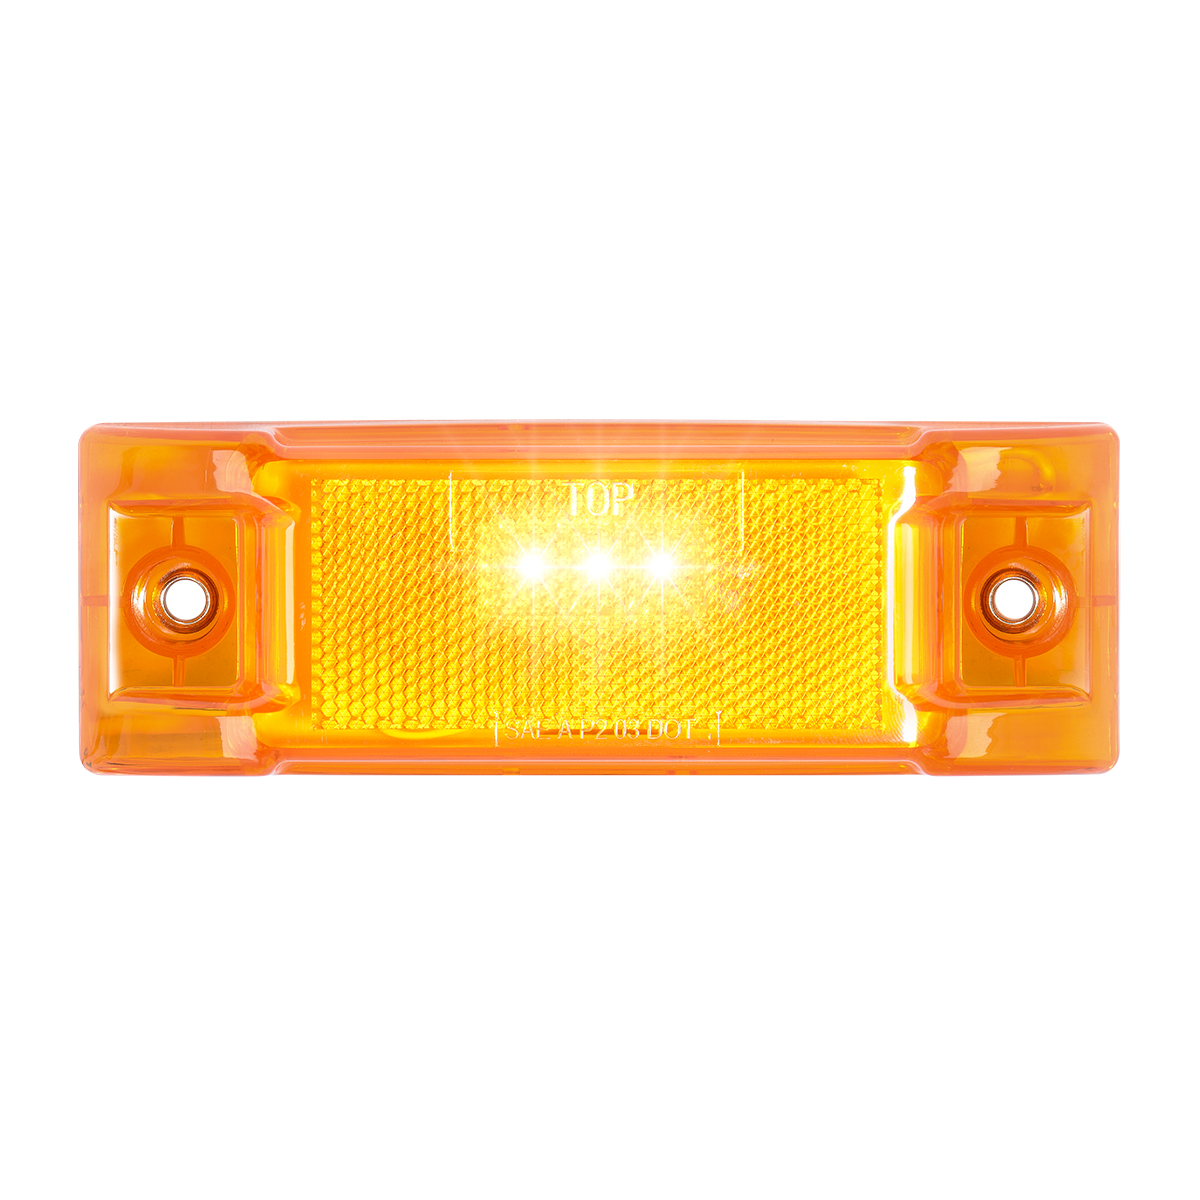 78330 Rectangular LED Marker Light with Reflector Lens in Amber/Amber